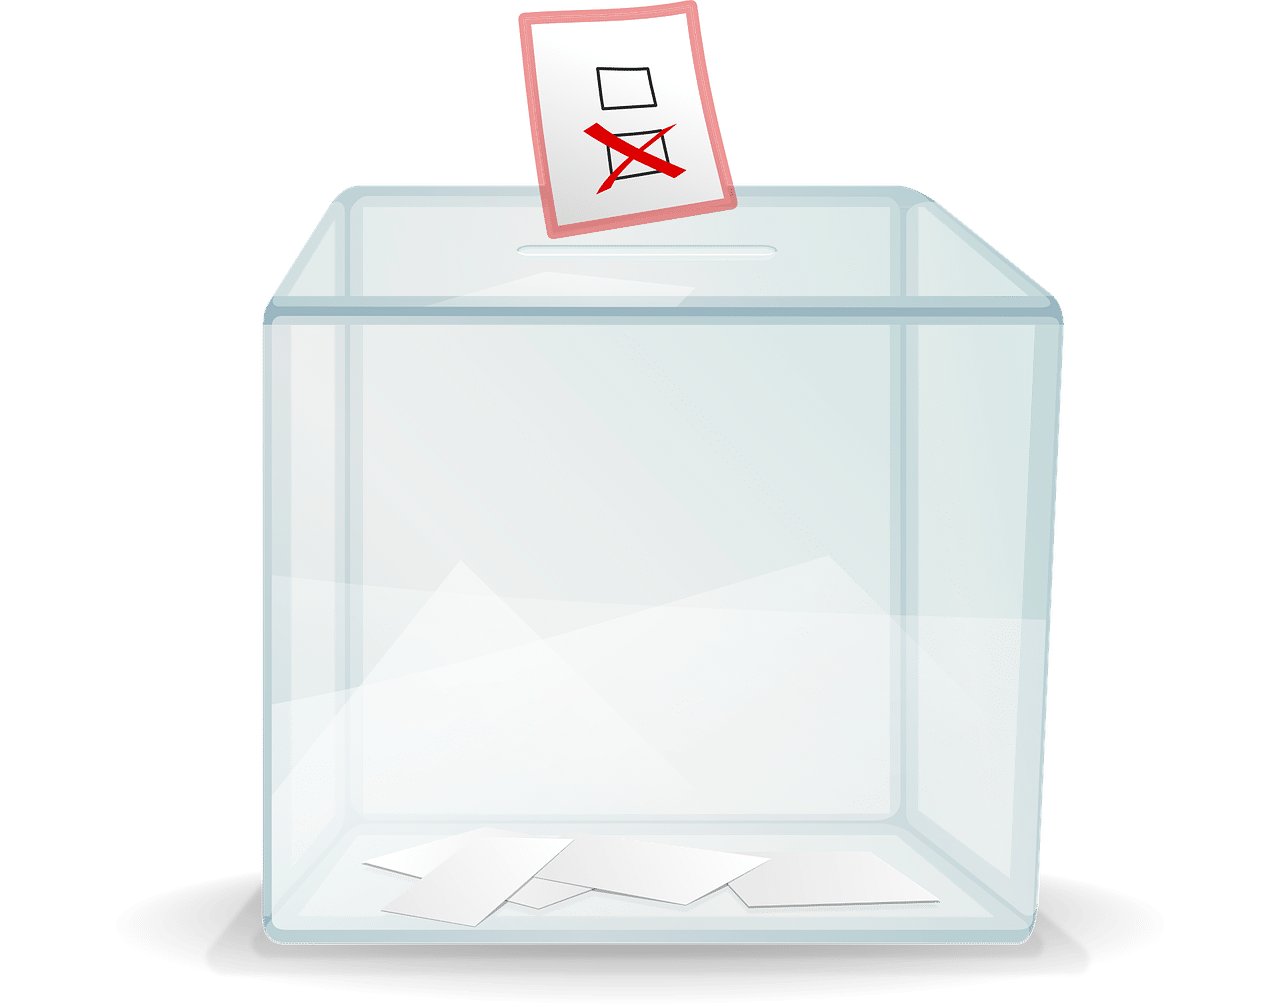 Facebook Account Blocking before Elections